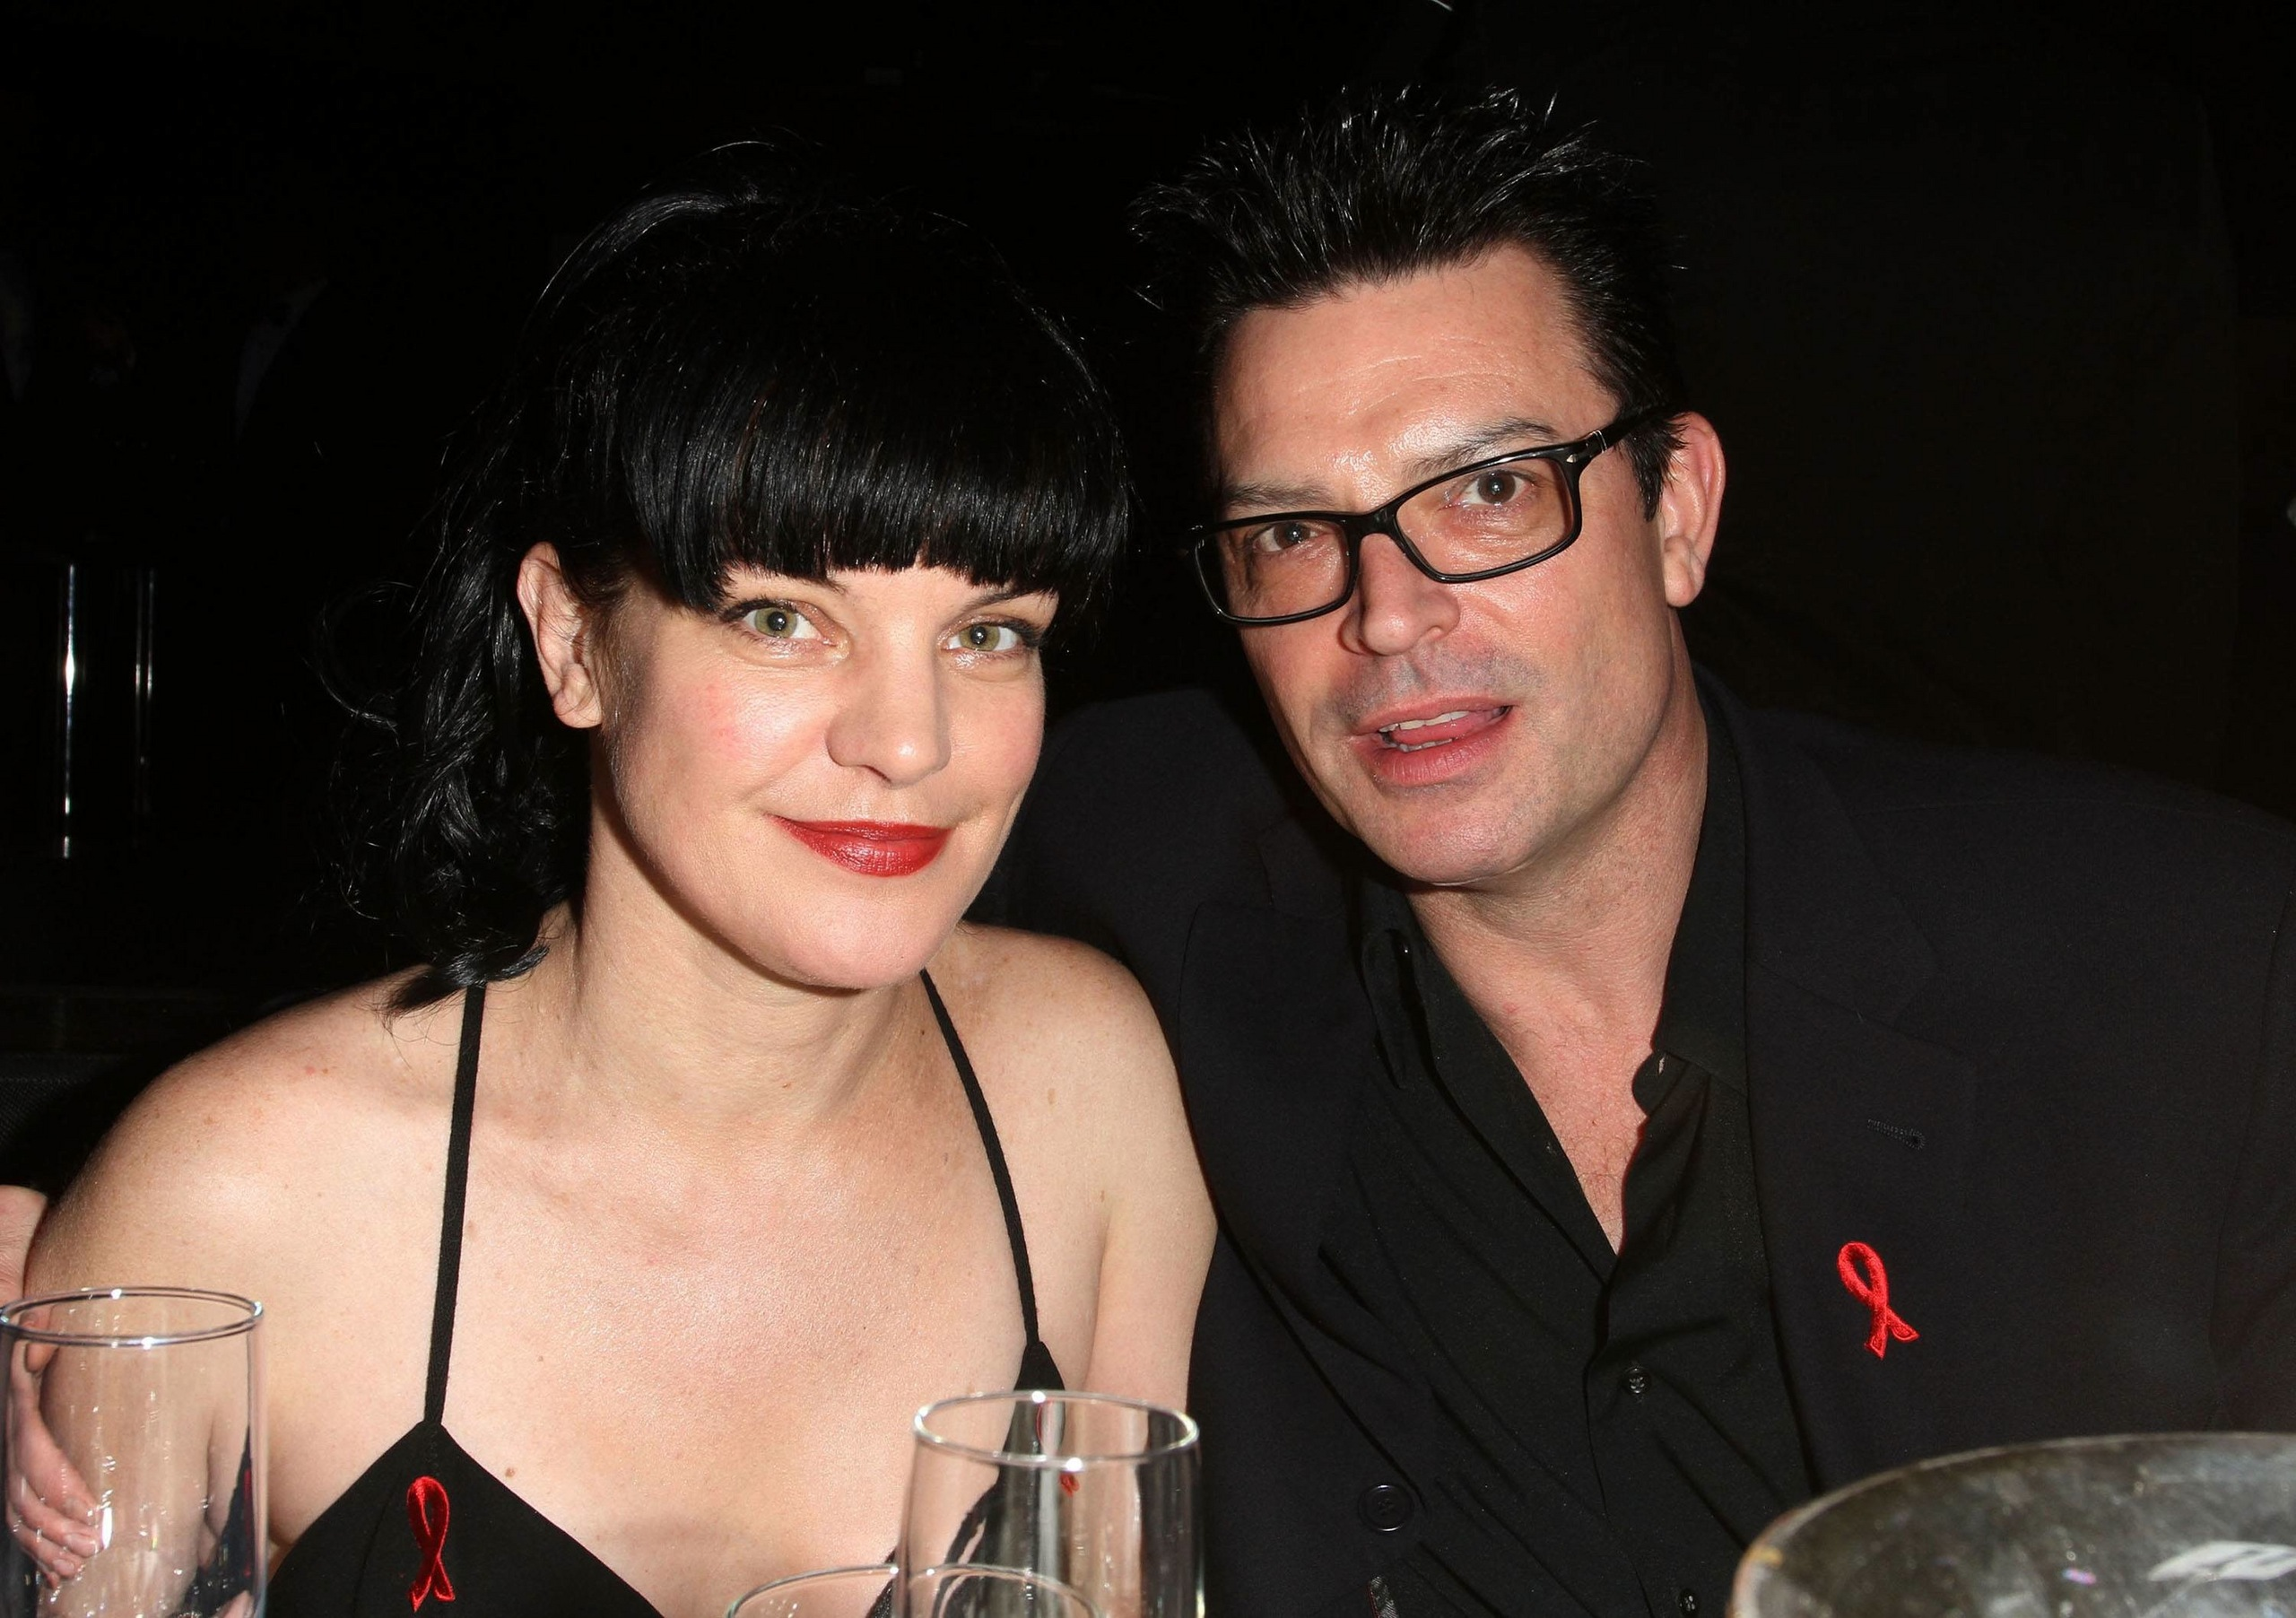 Pauley Perrette arrives at APLA's 'The Envelope Please' Oscar viewing party at The Abbey